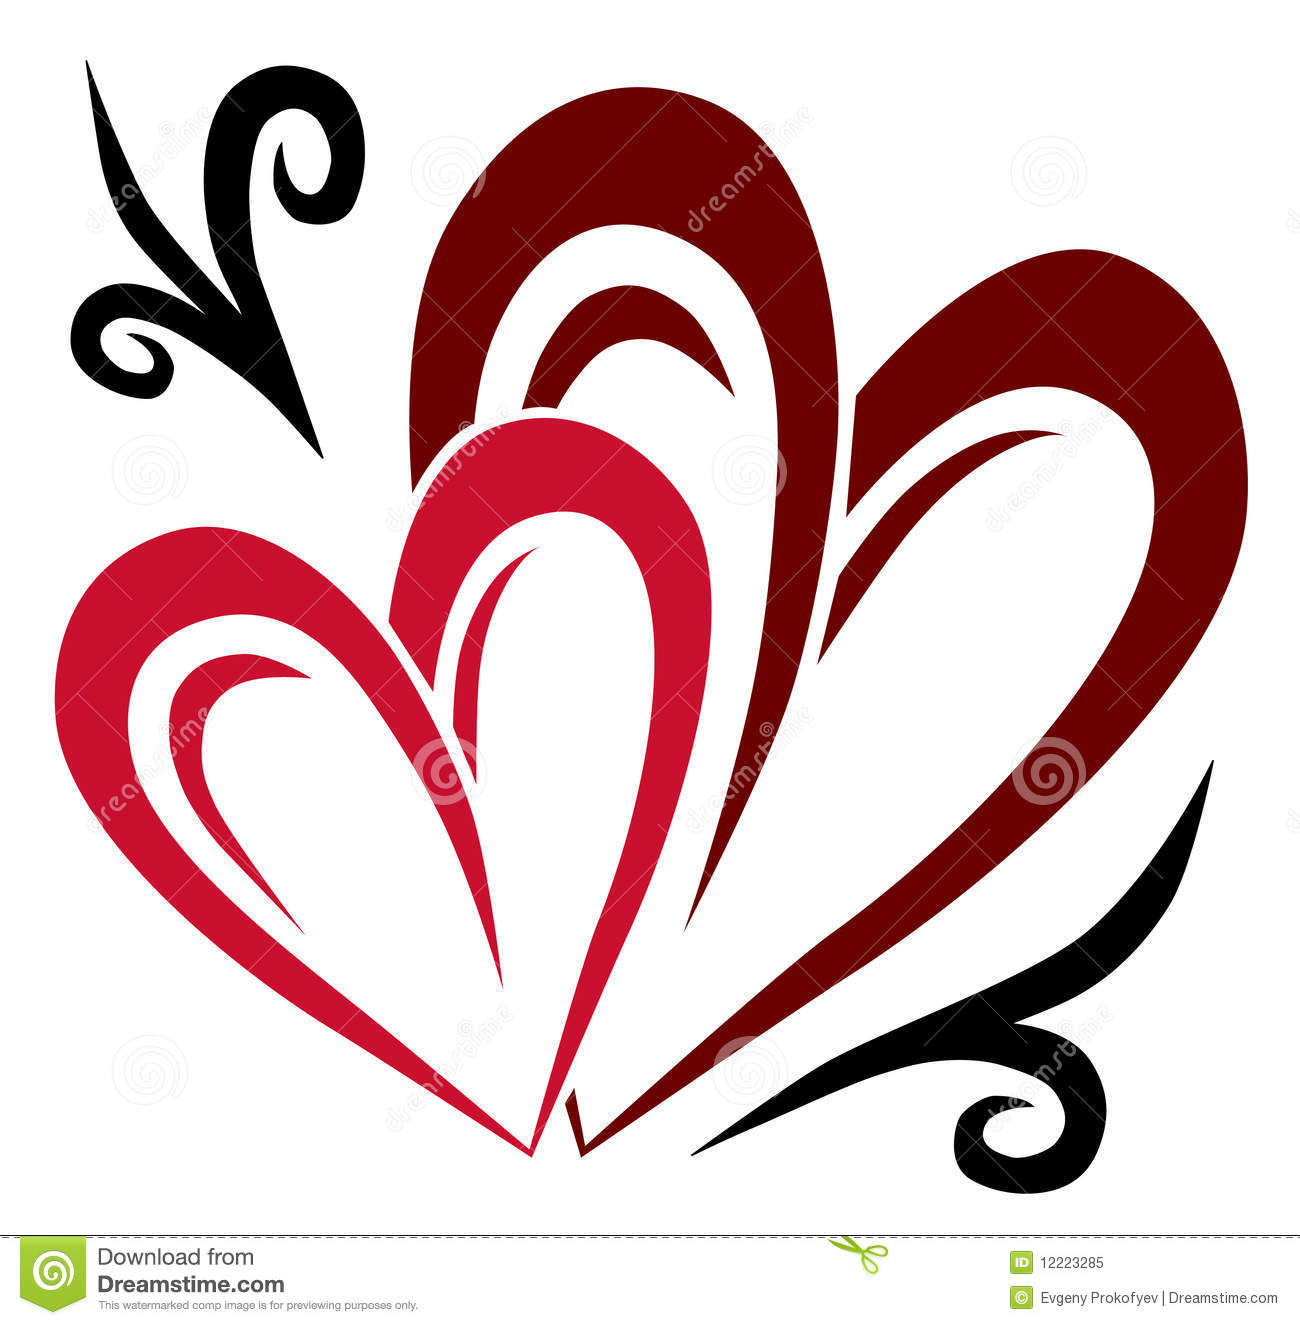 Two Hearts Tattoo Royalty Free Stock Photo - Image: 12223285